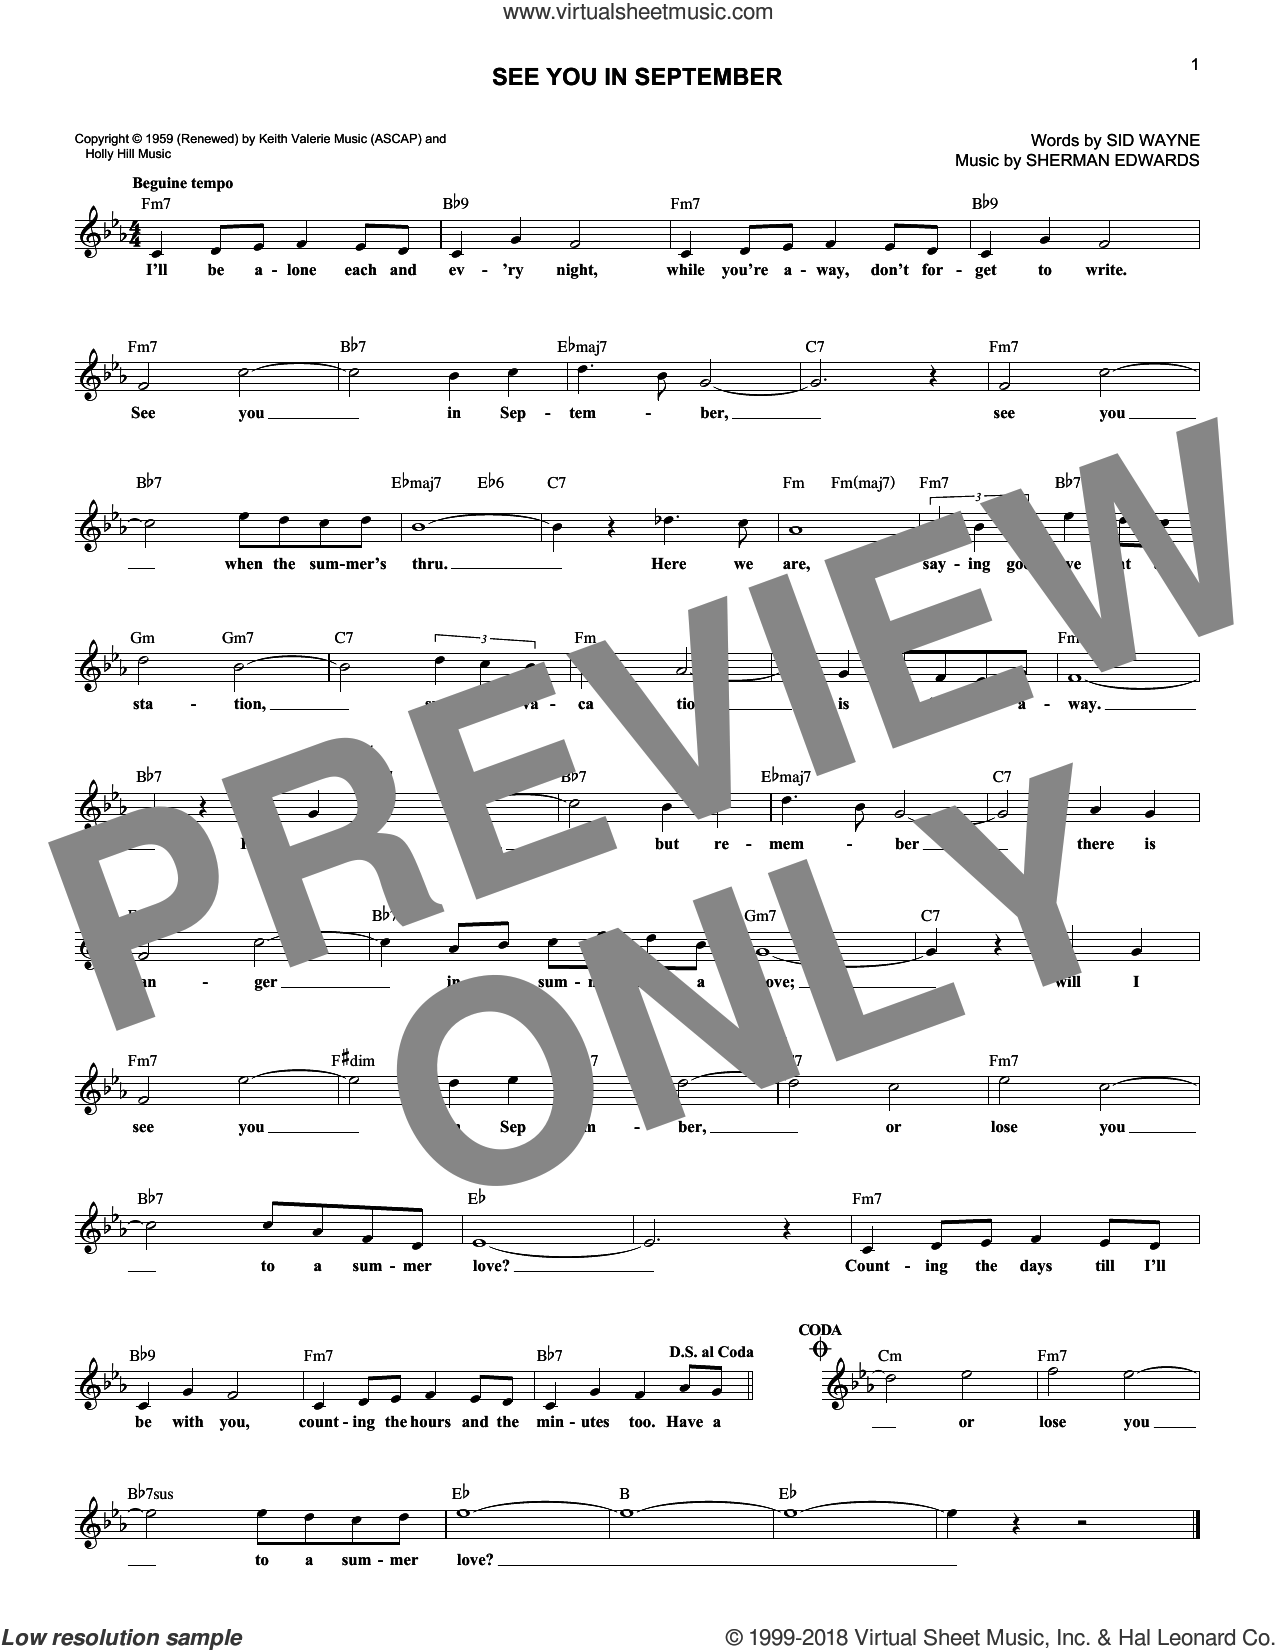 See You In September sheet music for voice and other instruments (fake book) by The Happenings, Tempos, Sherman Edwards and Sid Wayne, intermediate skill level